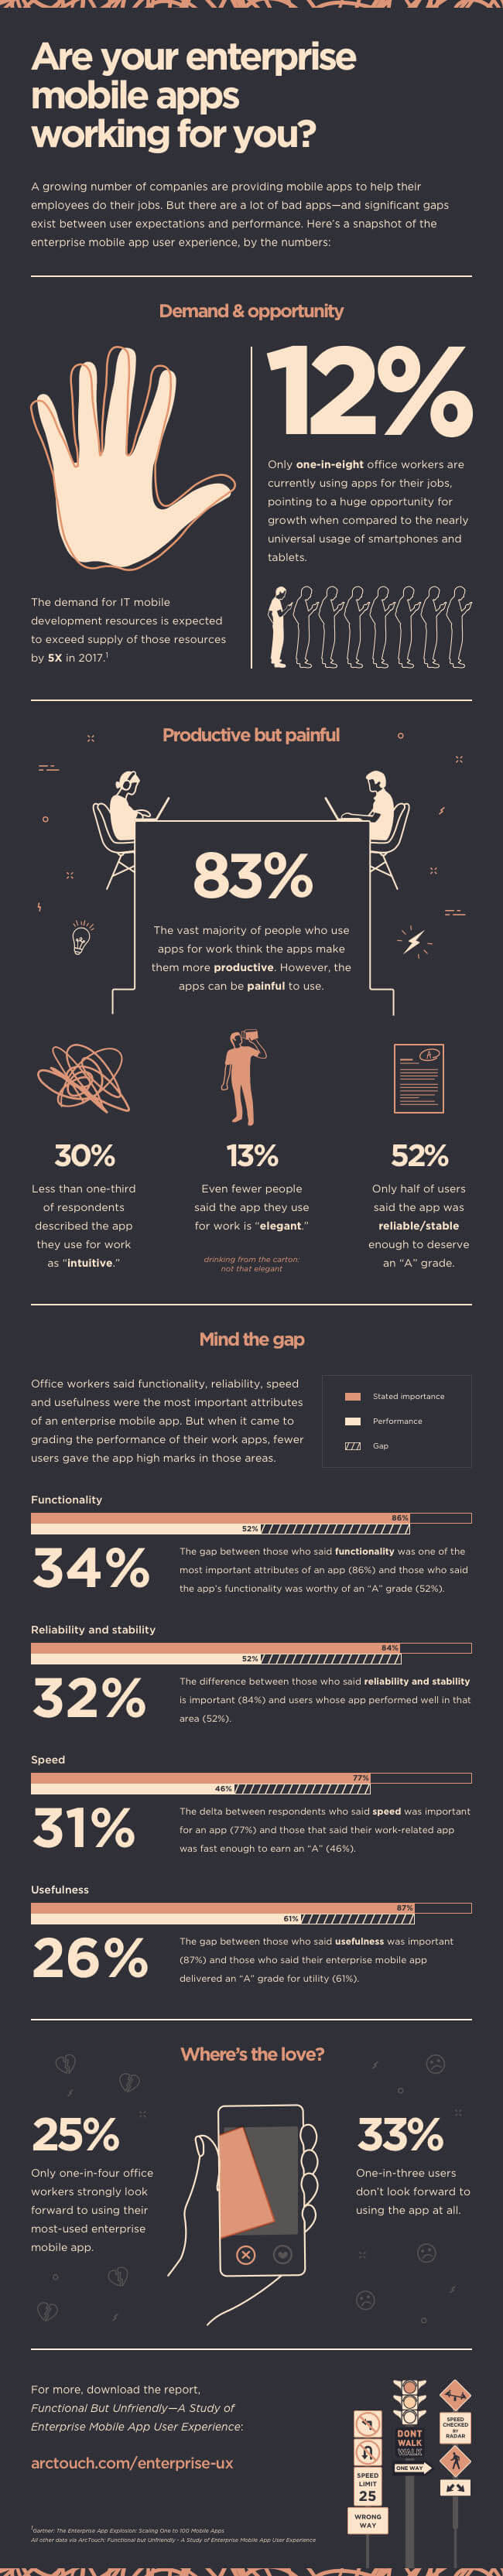 Infographic Enterprise Mobile Apps